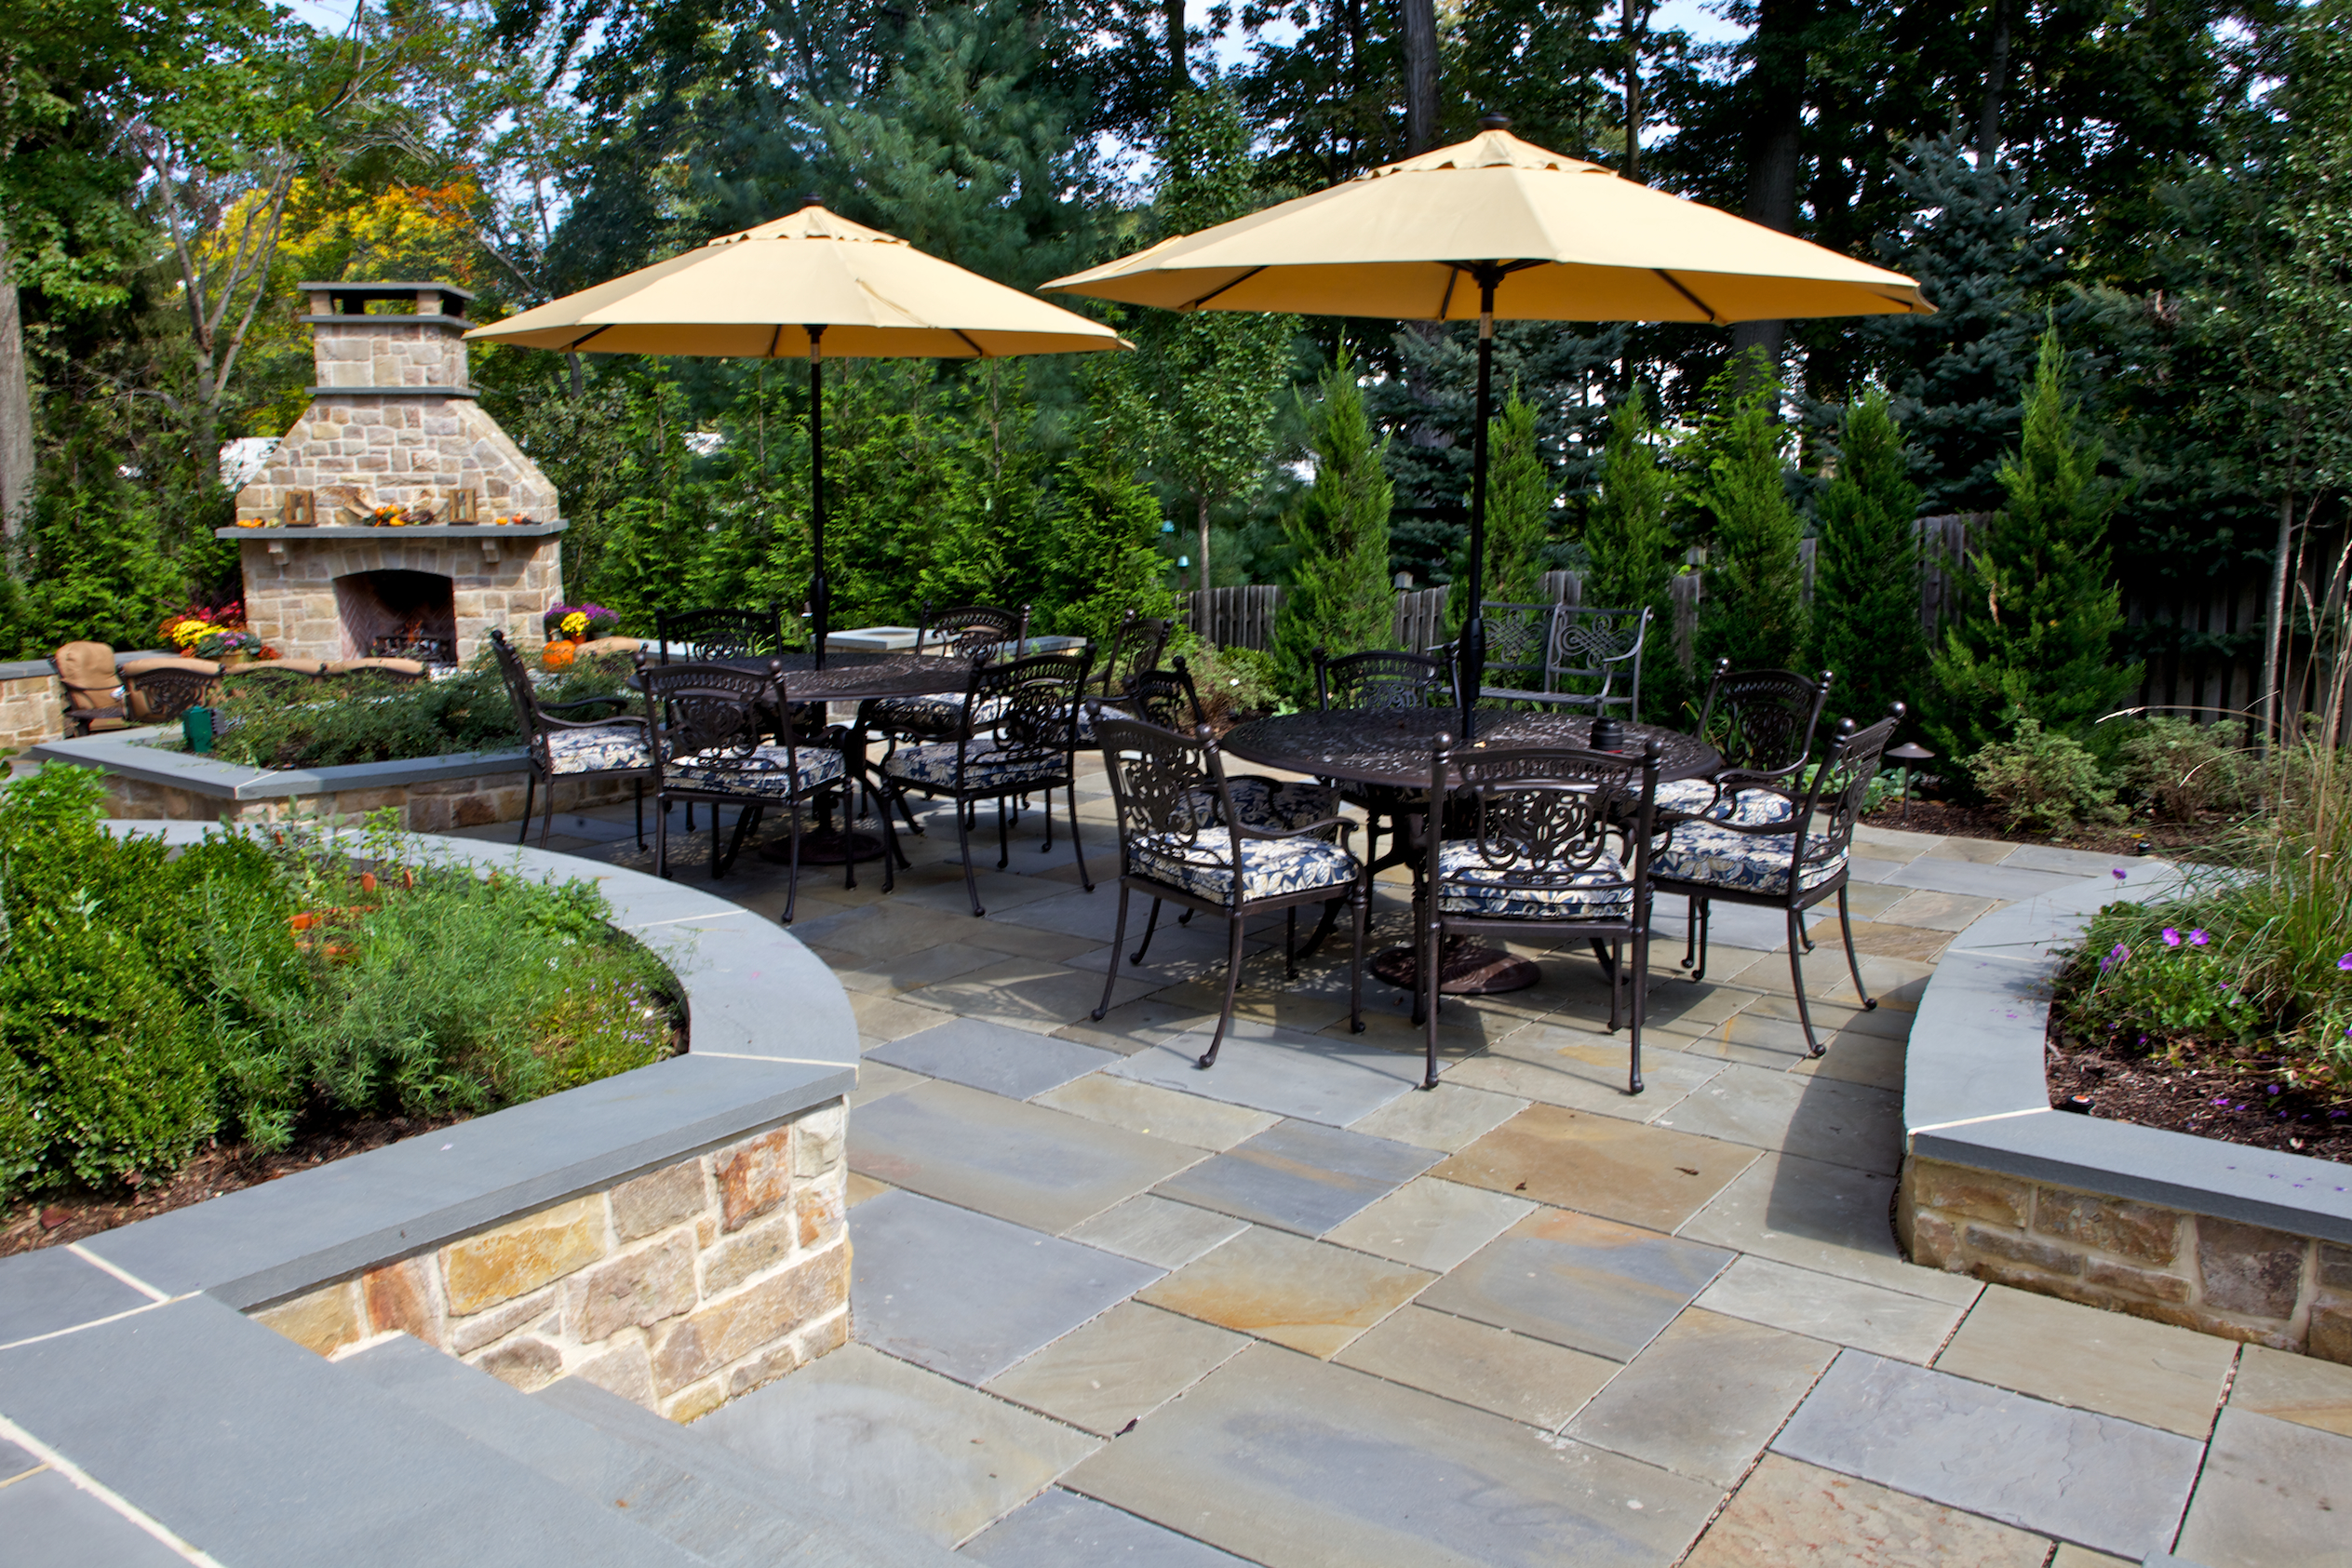 Traditional Outdoor Furniture Part - 39: ... Terrific Paver Outdoor Patio Ideas With Patio Furniture · Colorado  Outdoor Living Traditional ...